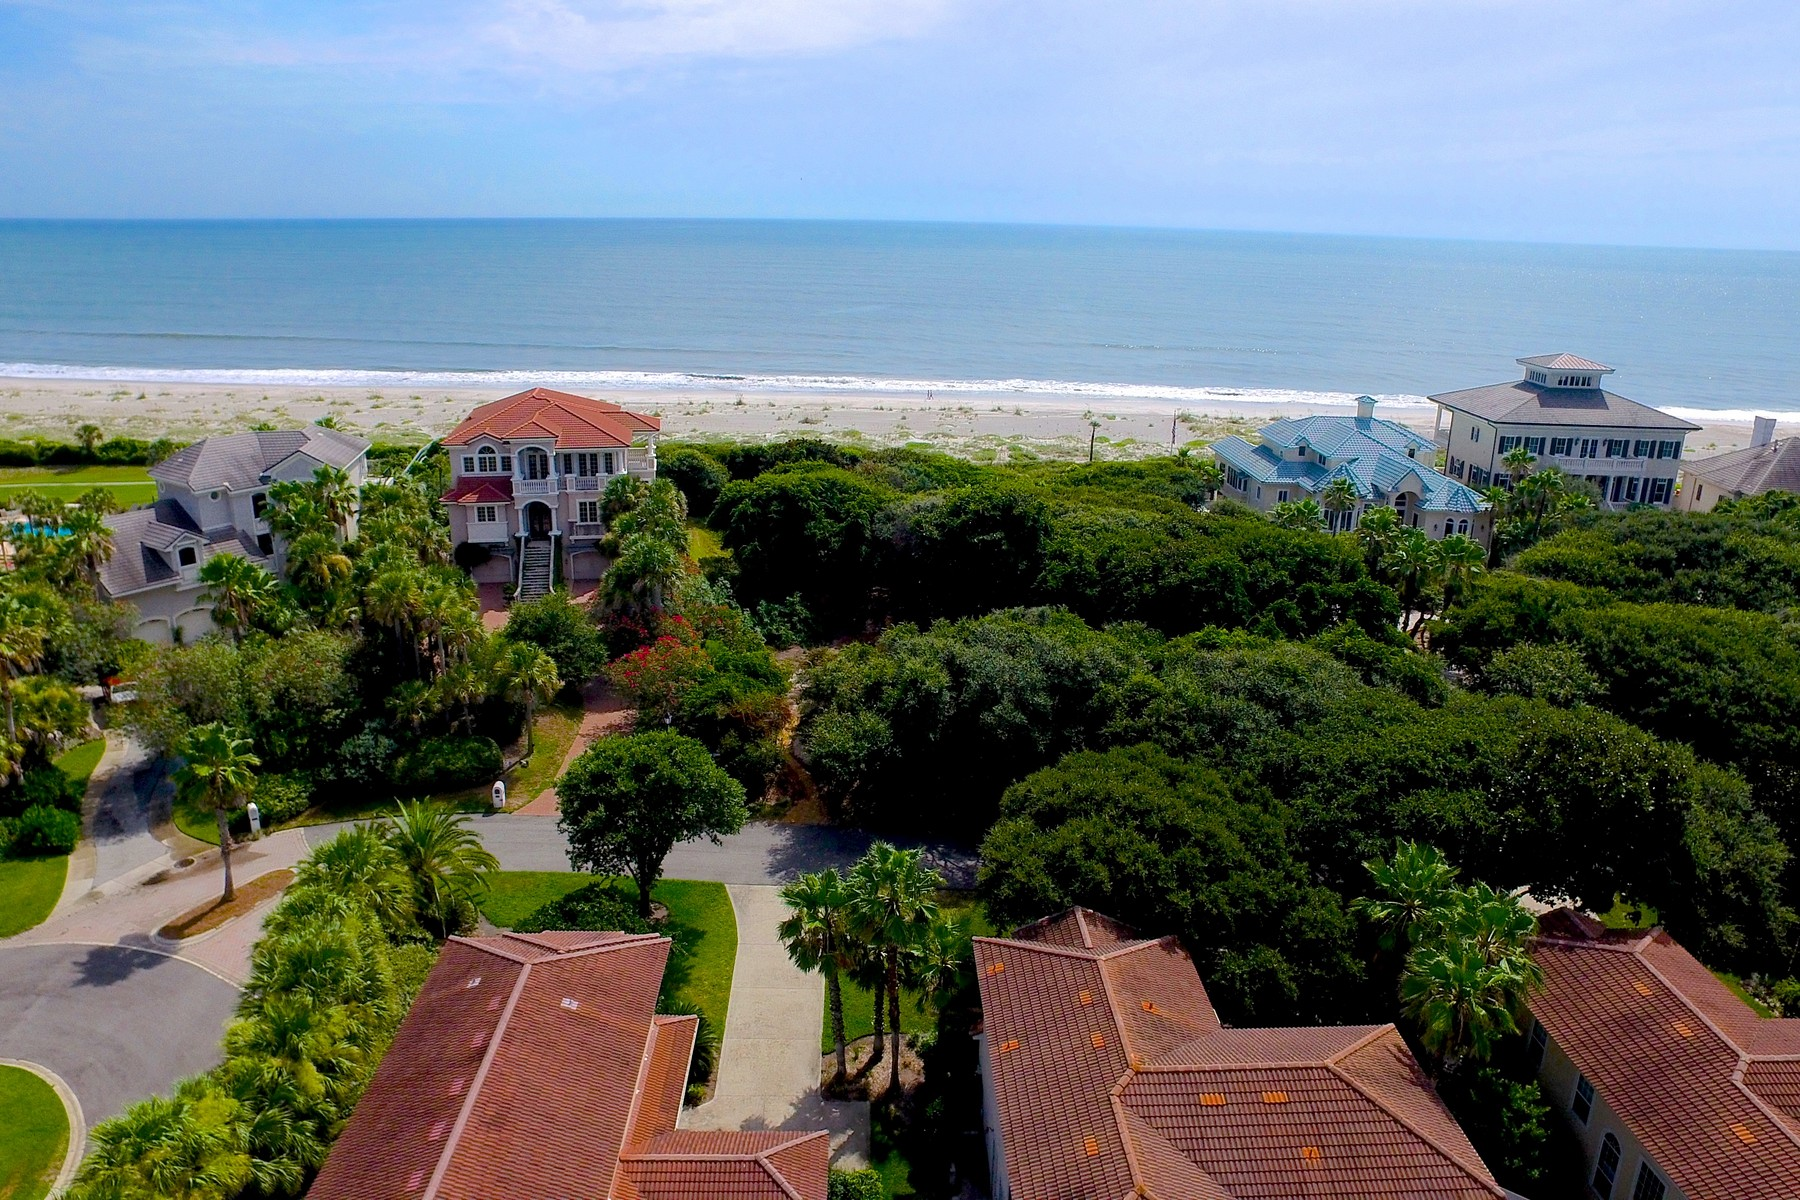 Land for Sale at Residence Ct Lots 10 & 11 Residence Ct Lots 10 & 11 Amelia Island, Florida 32034 United States